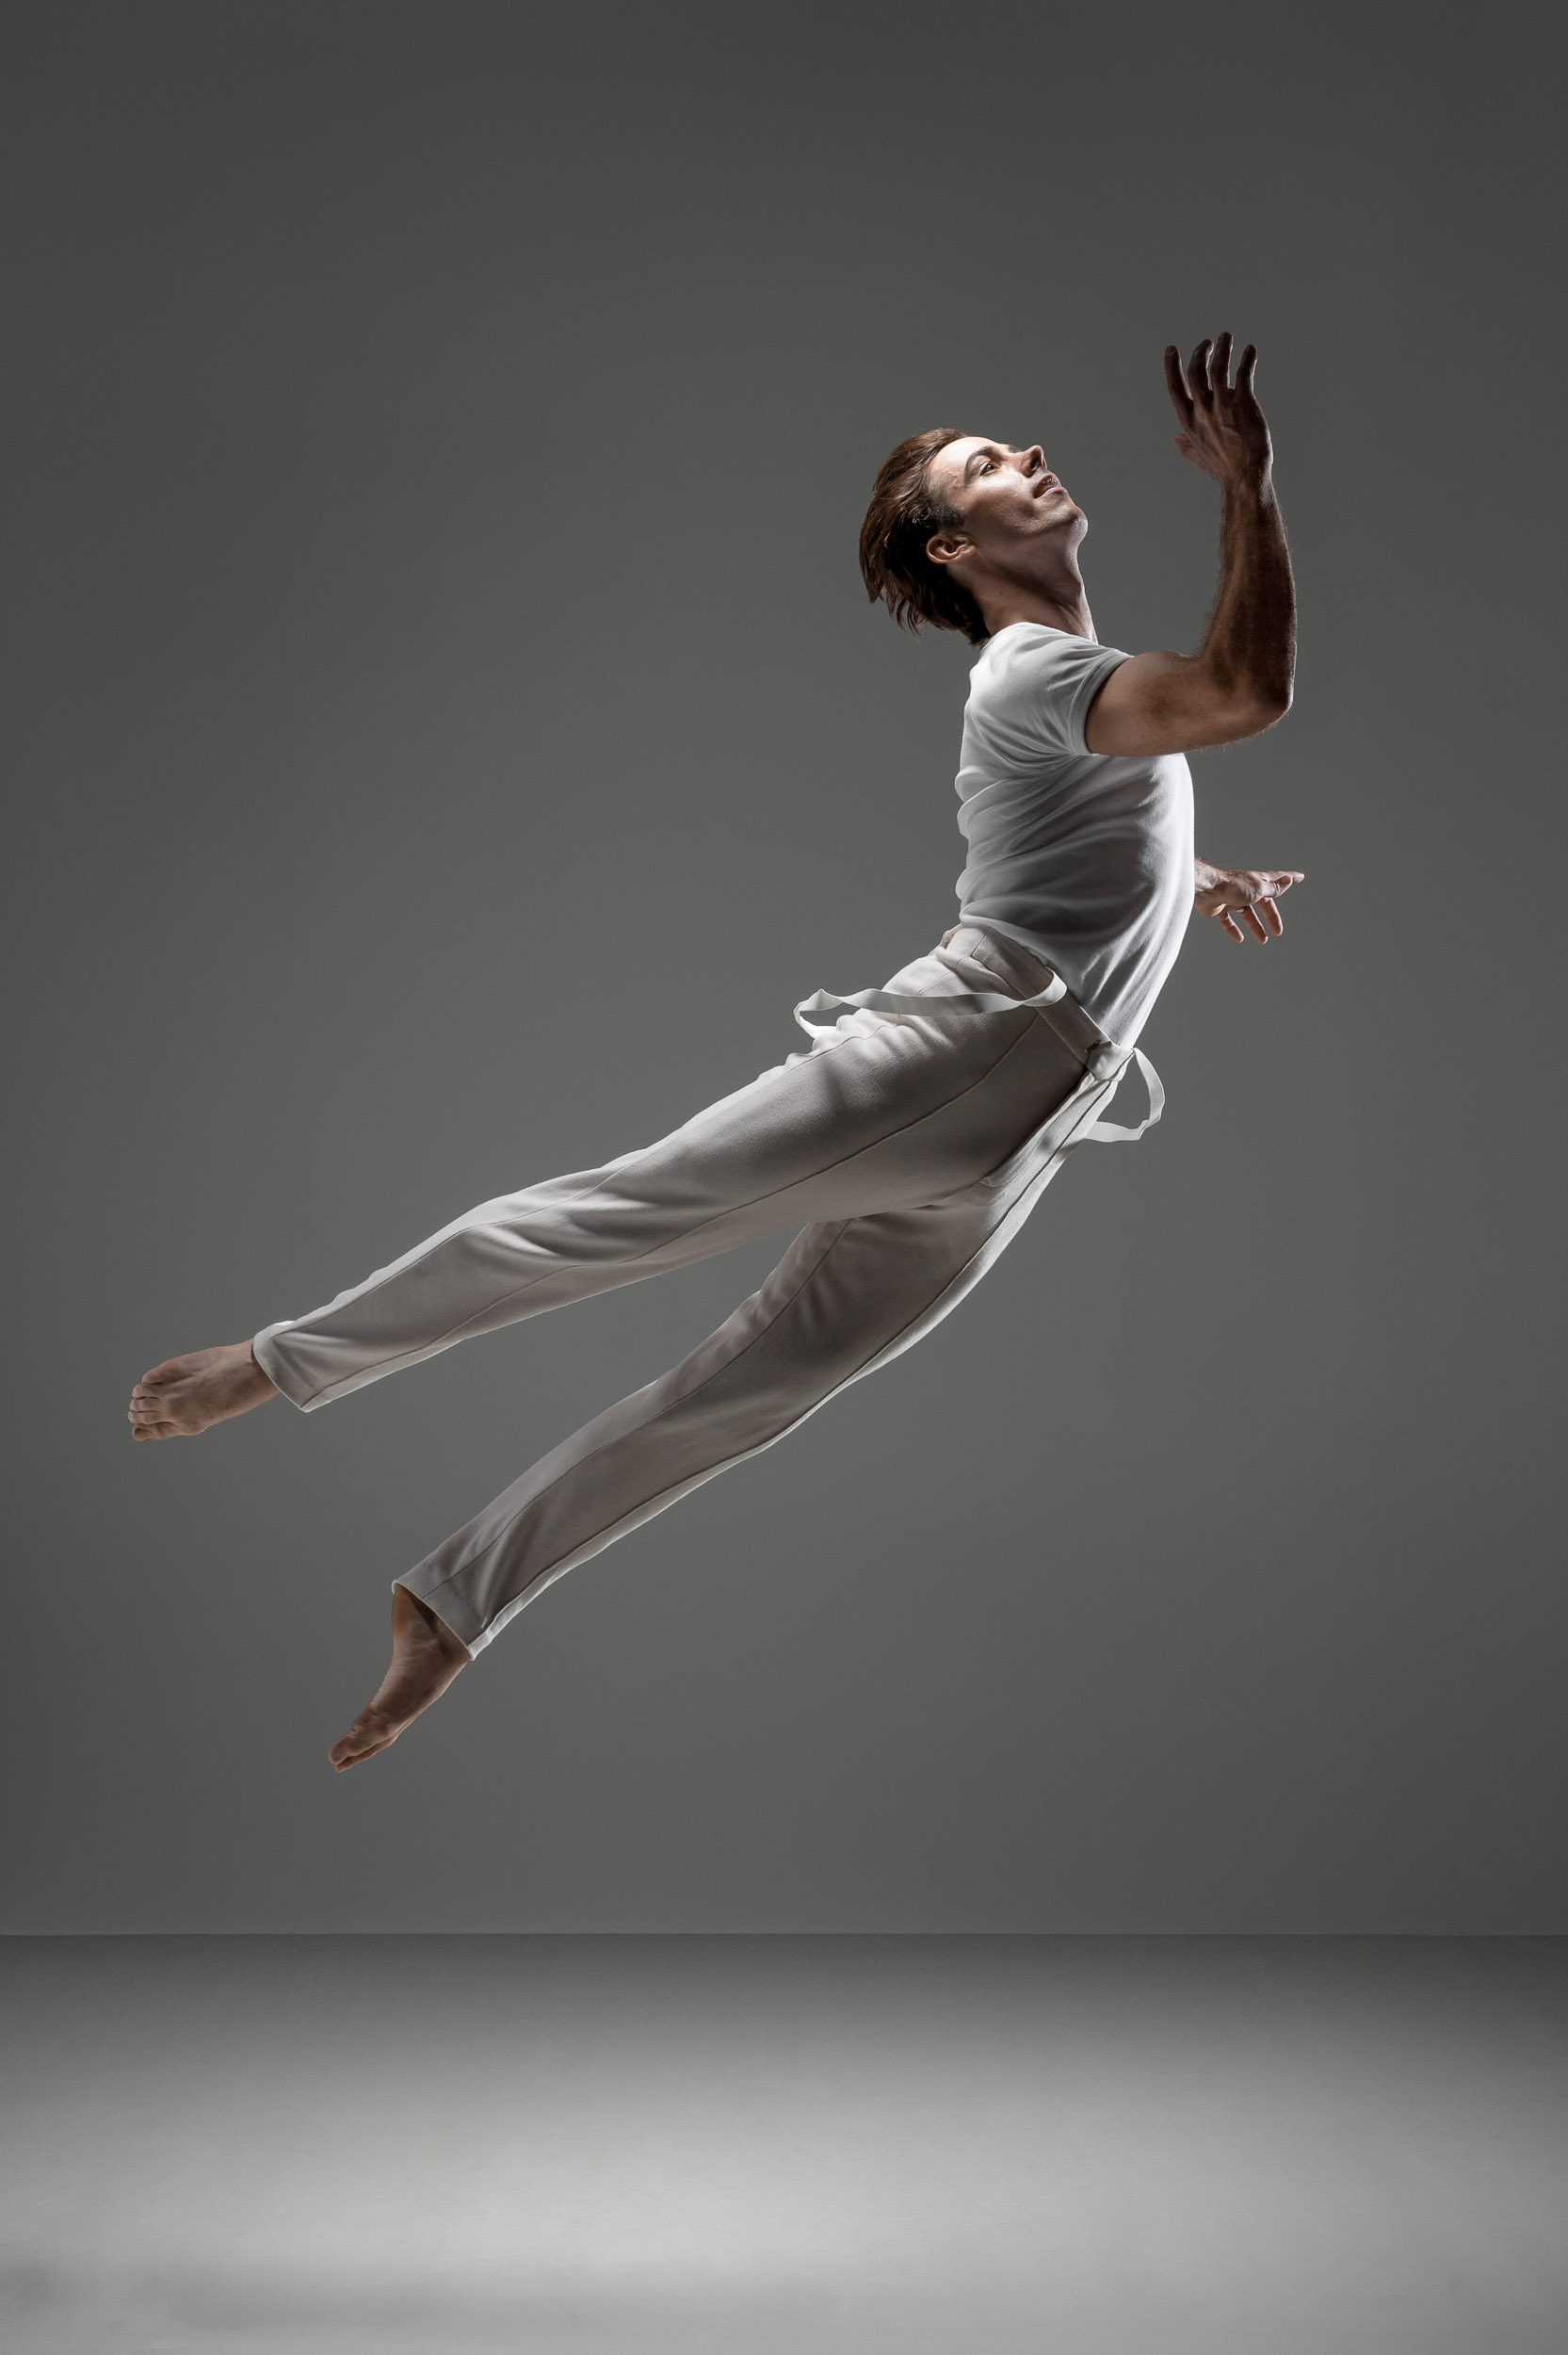 Rudy Hawkes - The Australian Ballet